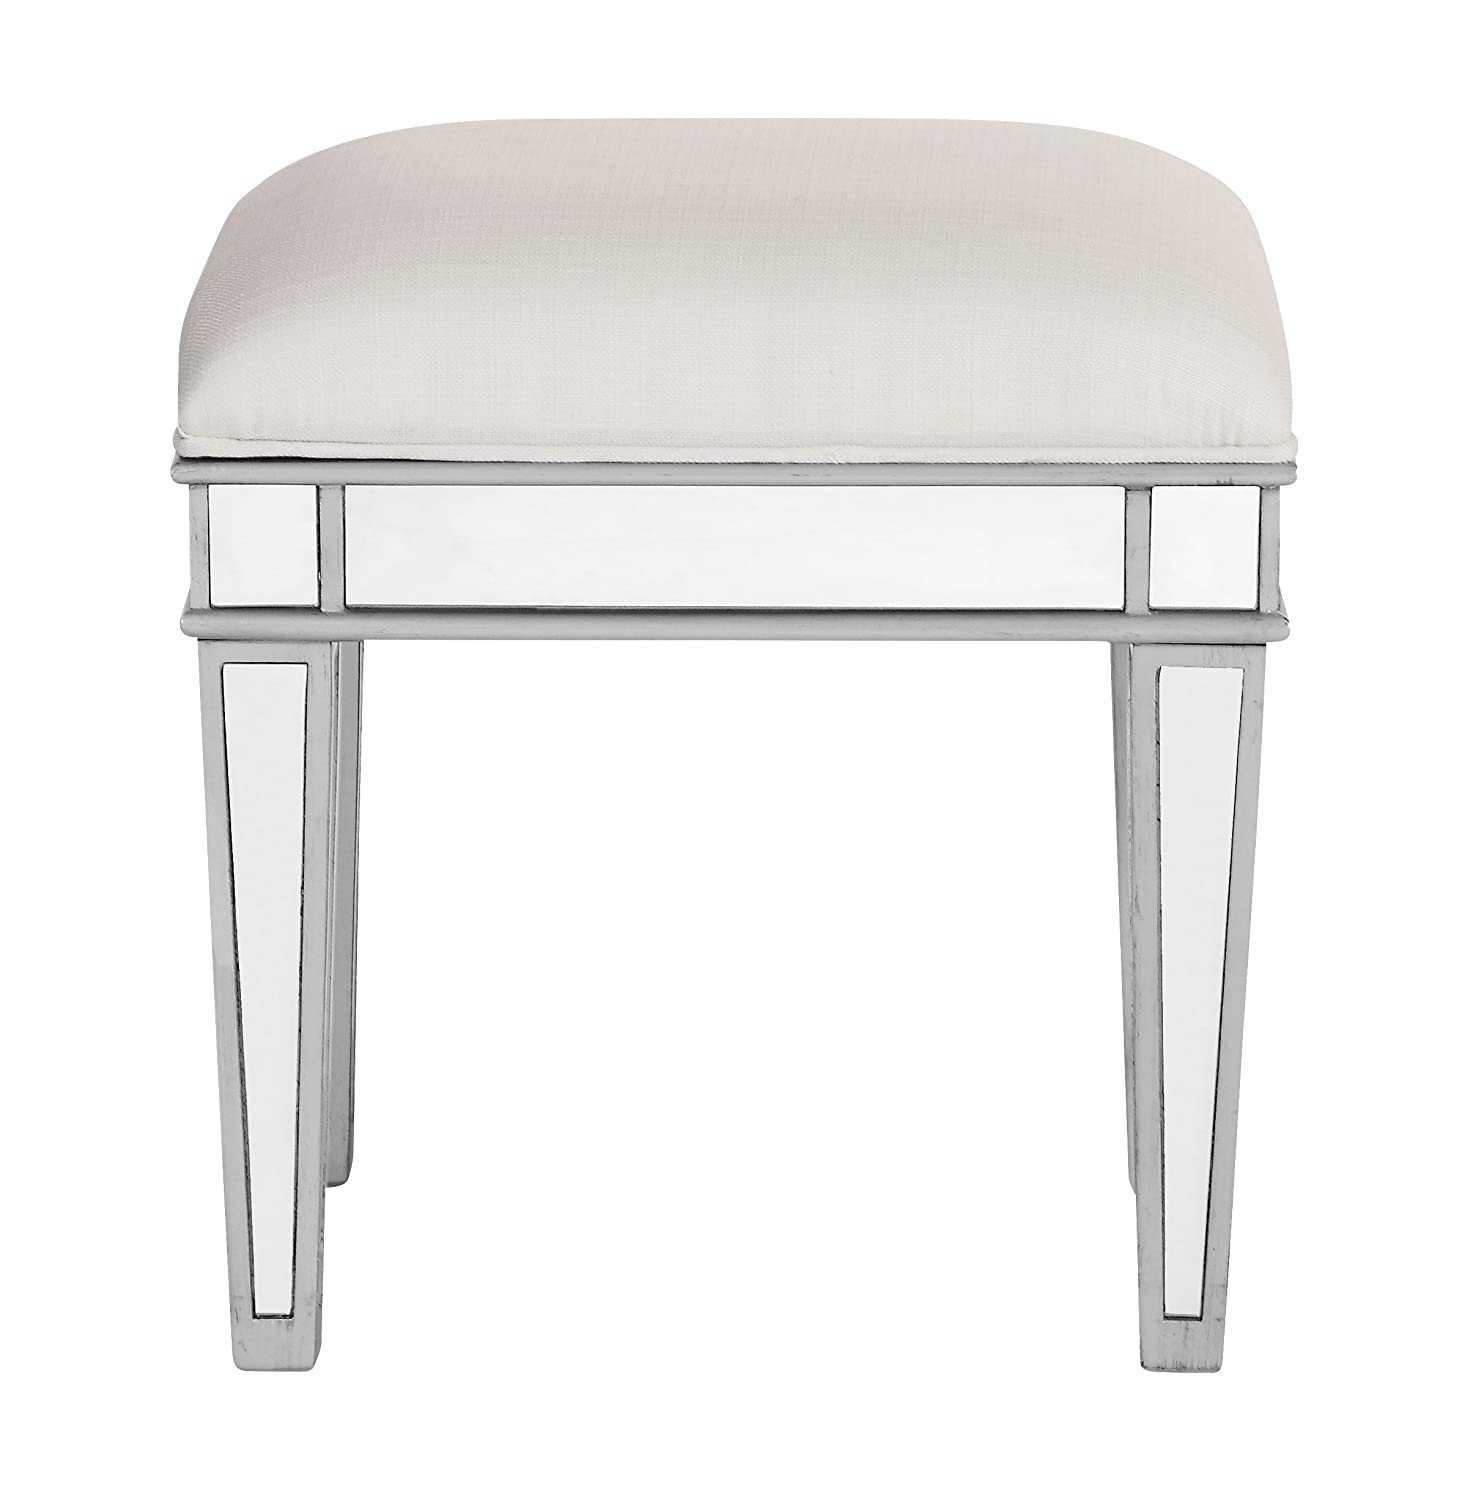 Modern Style Beveled Mirrored Stool Chair in silver Finish 18 in. x 14 in. x 18 in.